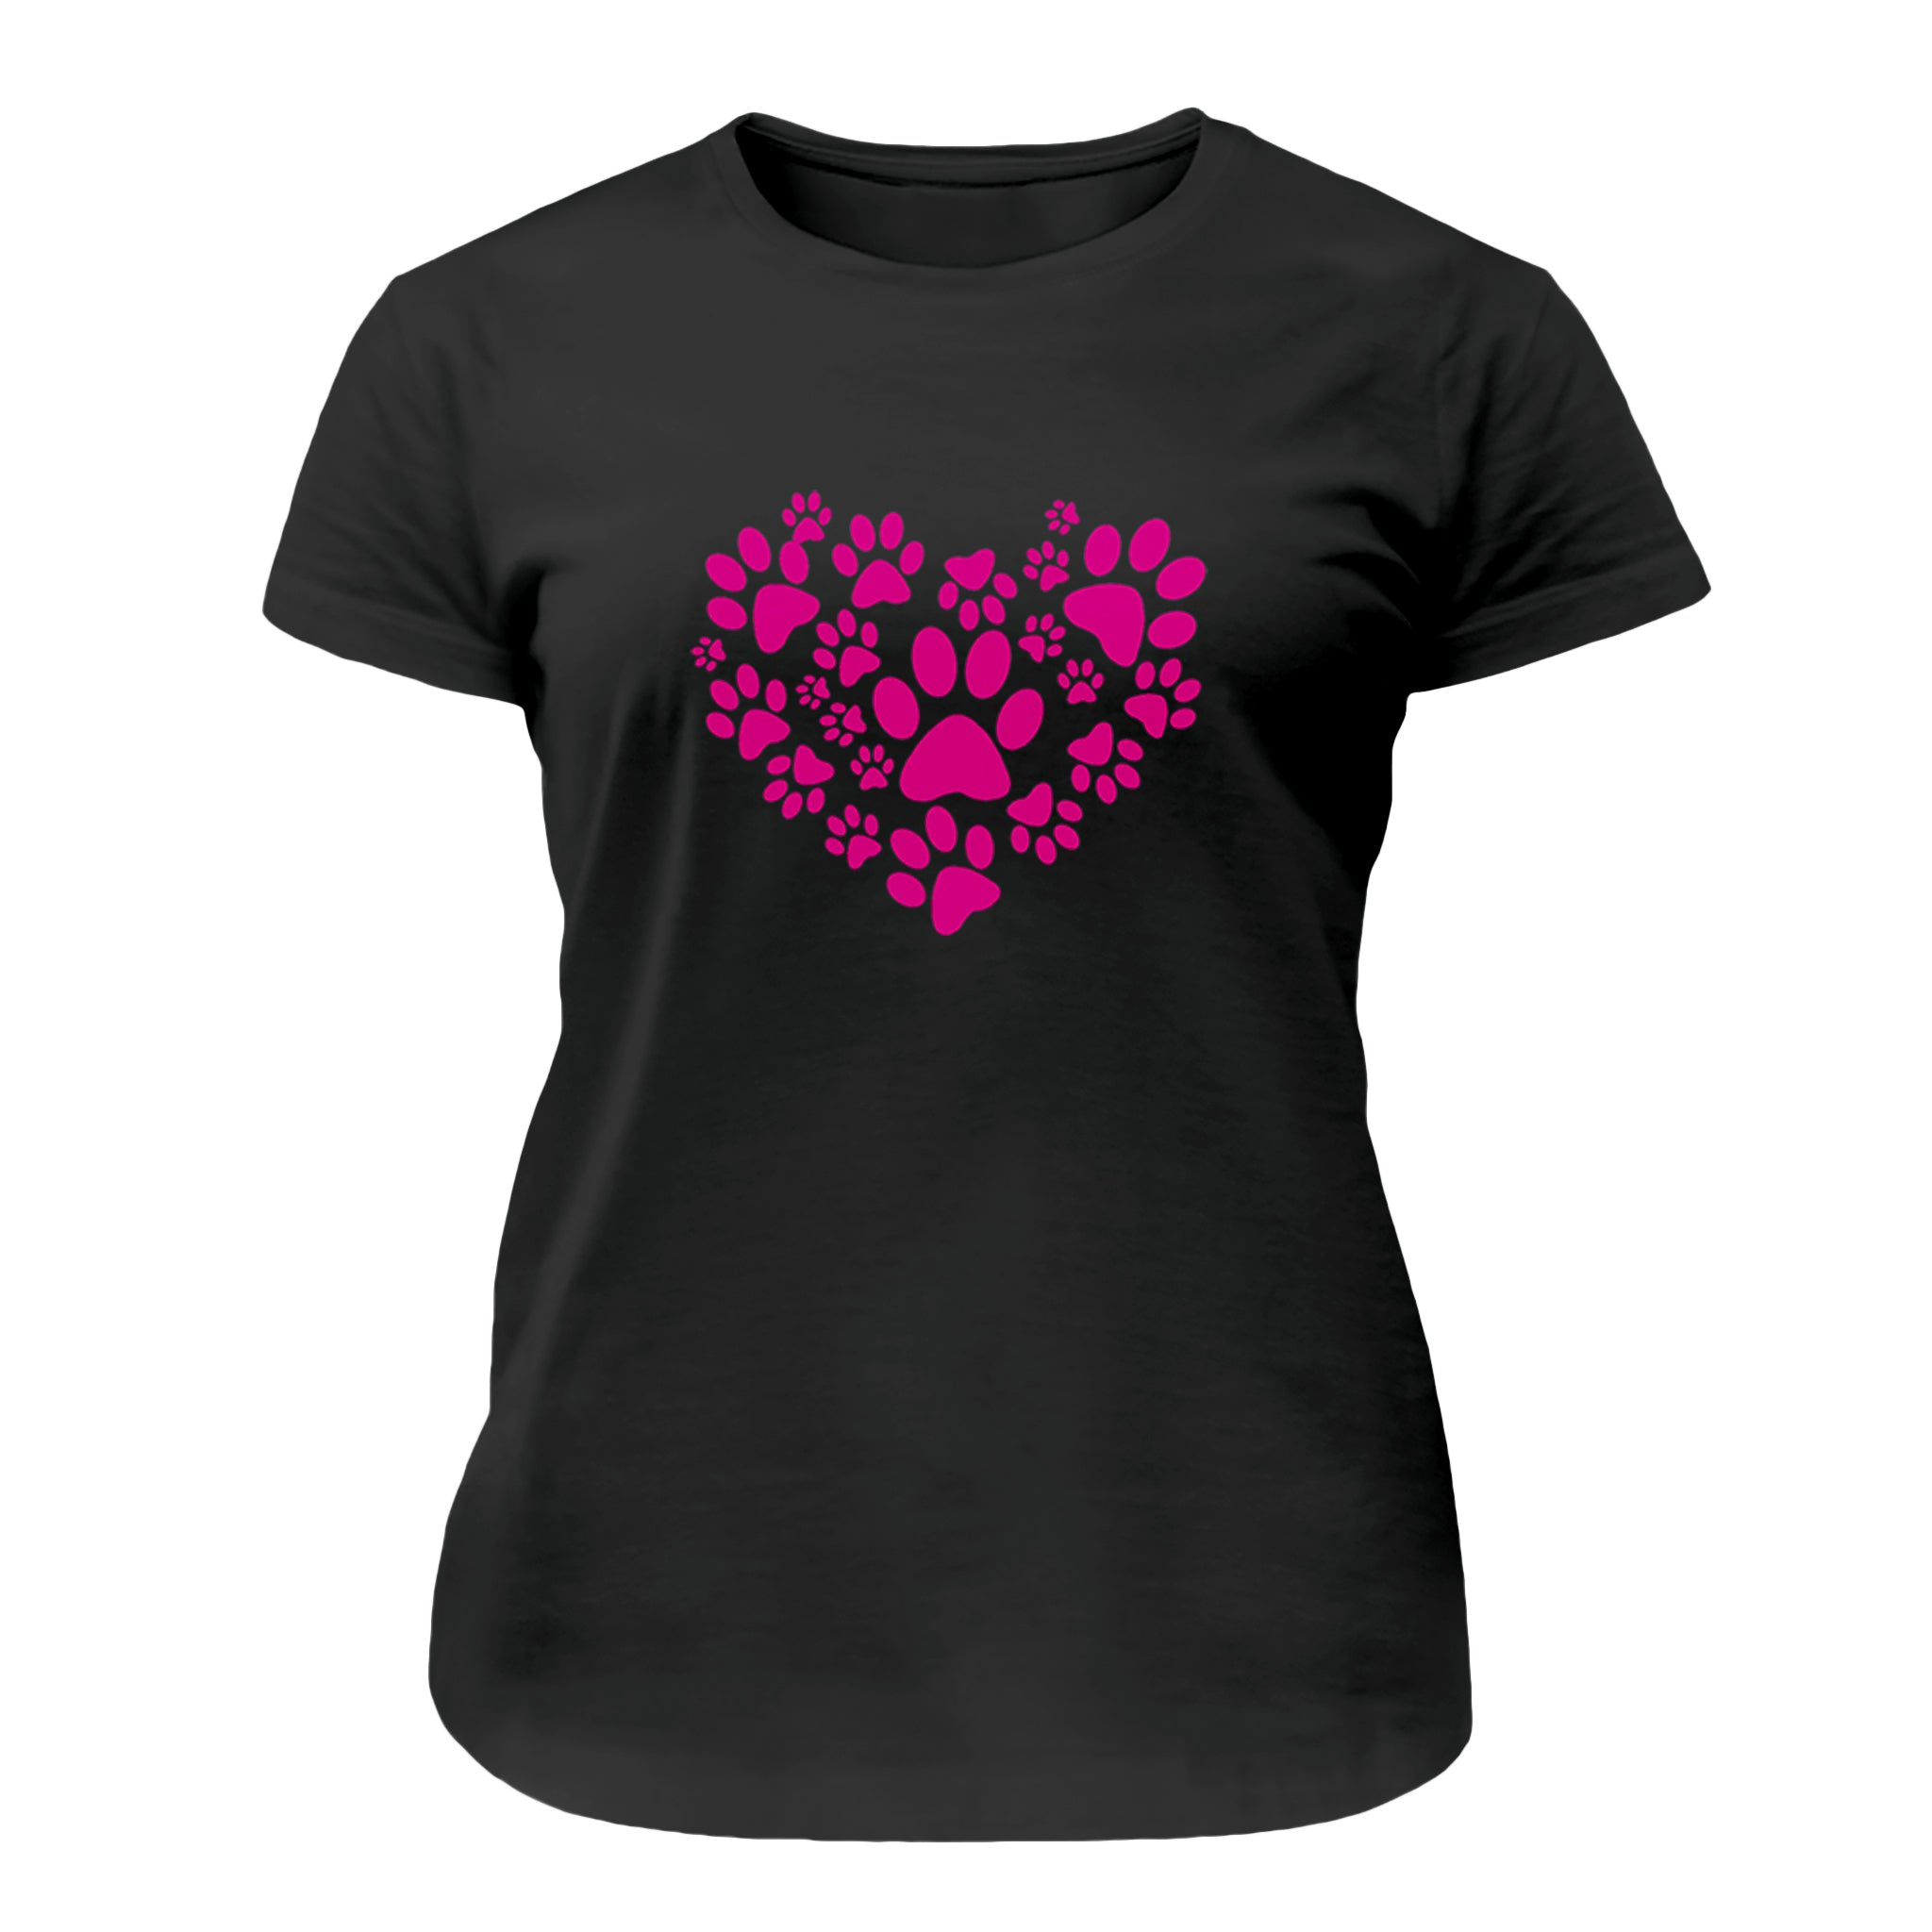 Paw Print Heart Women's T